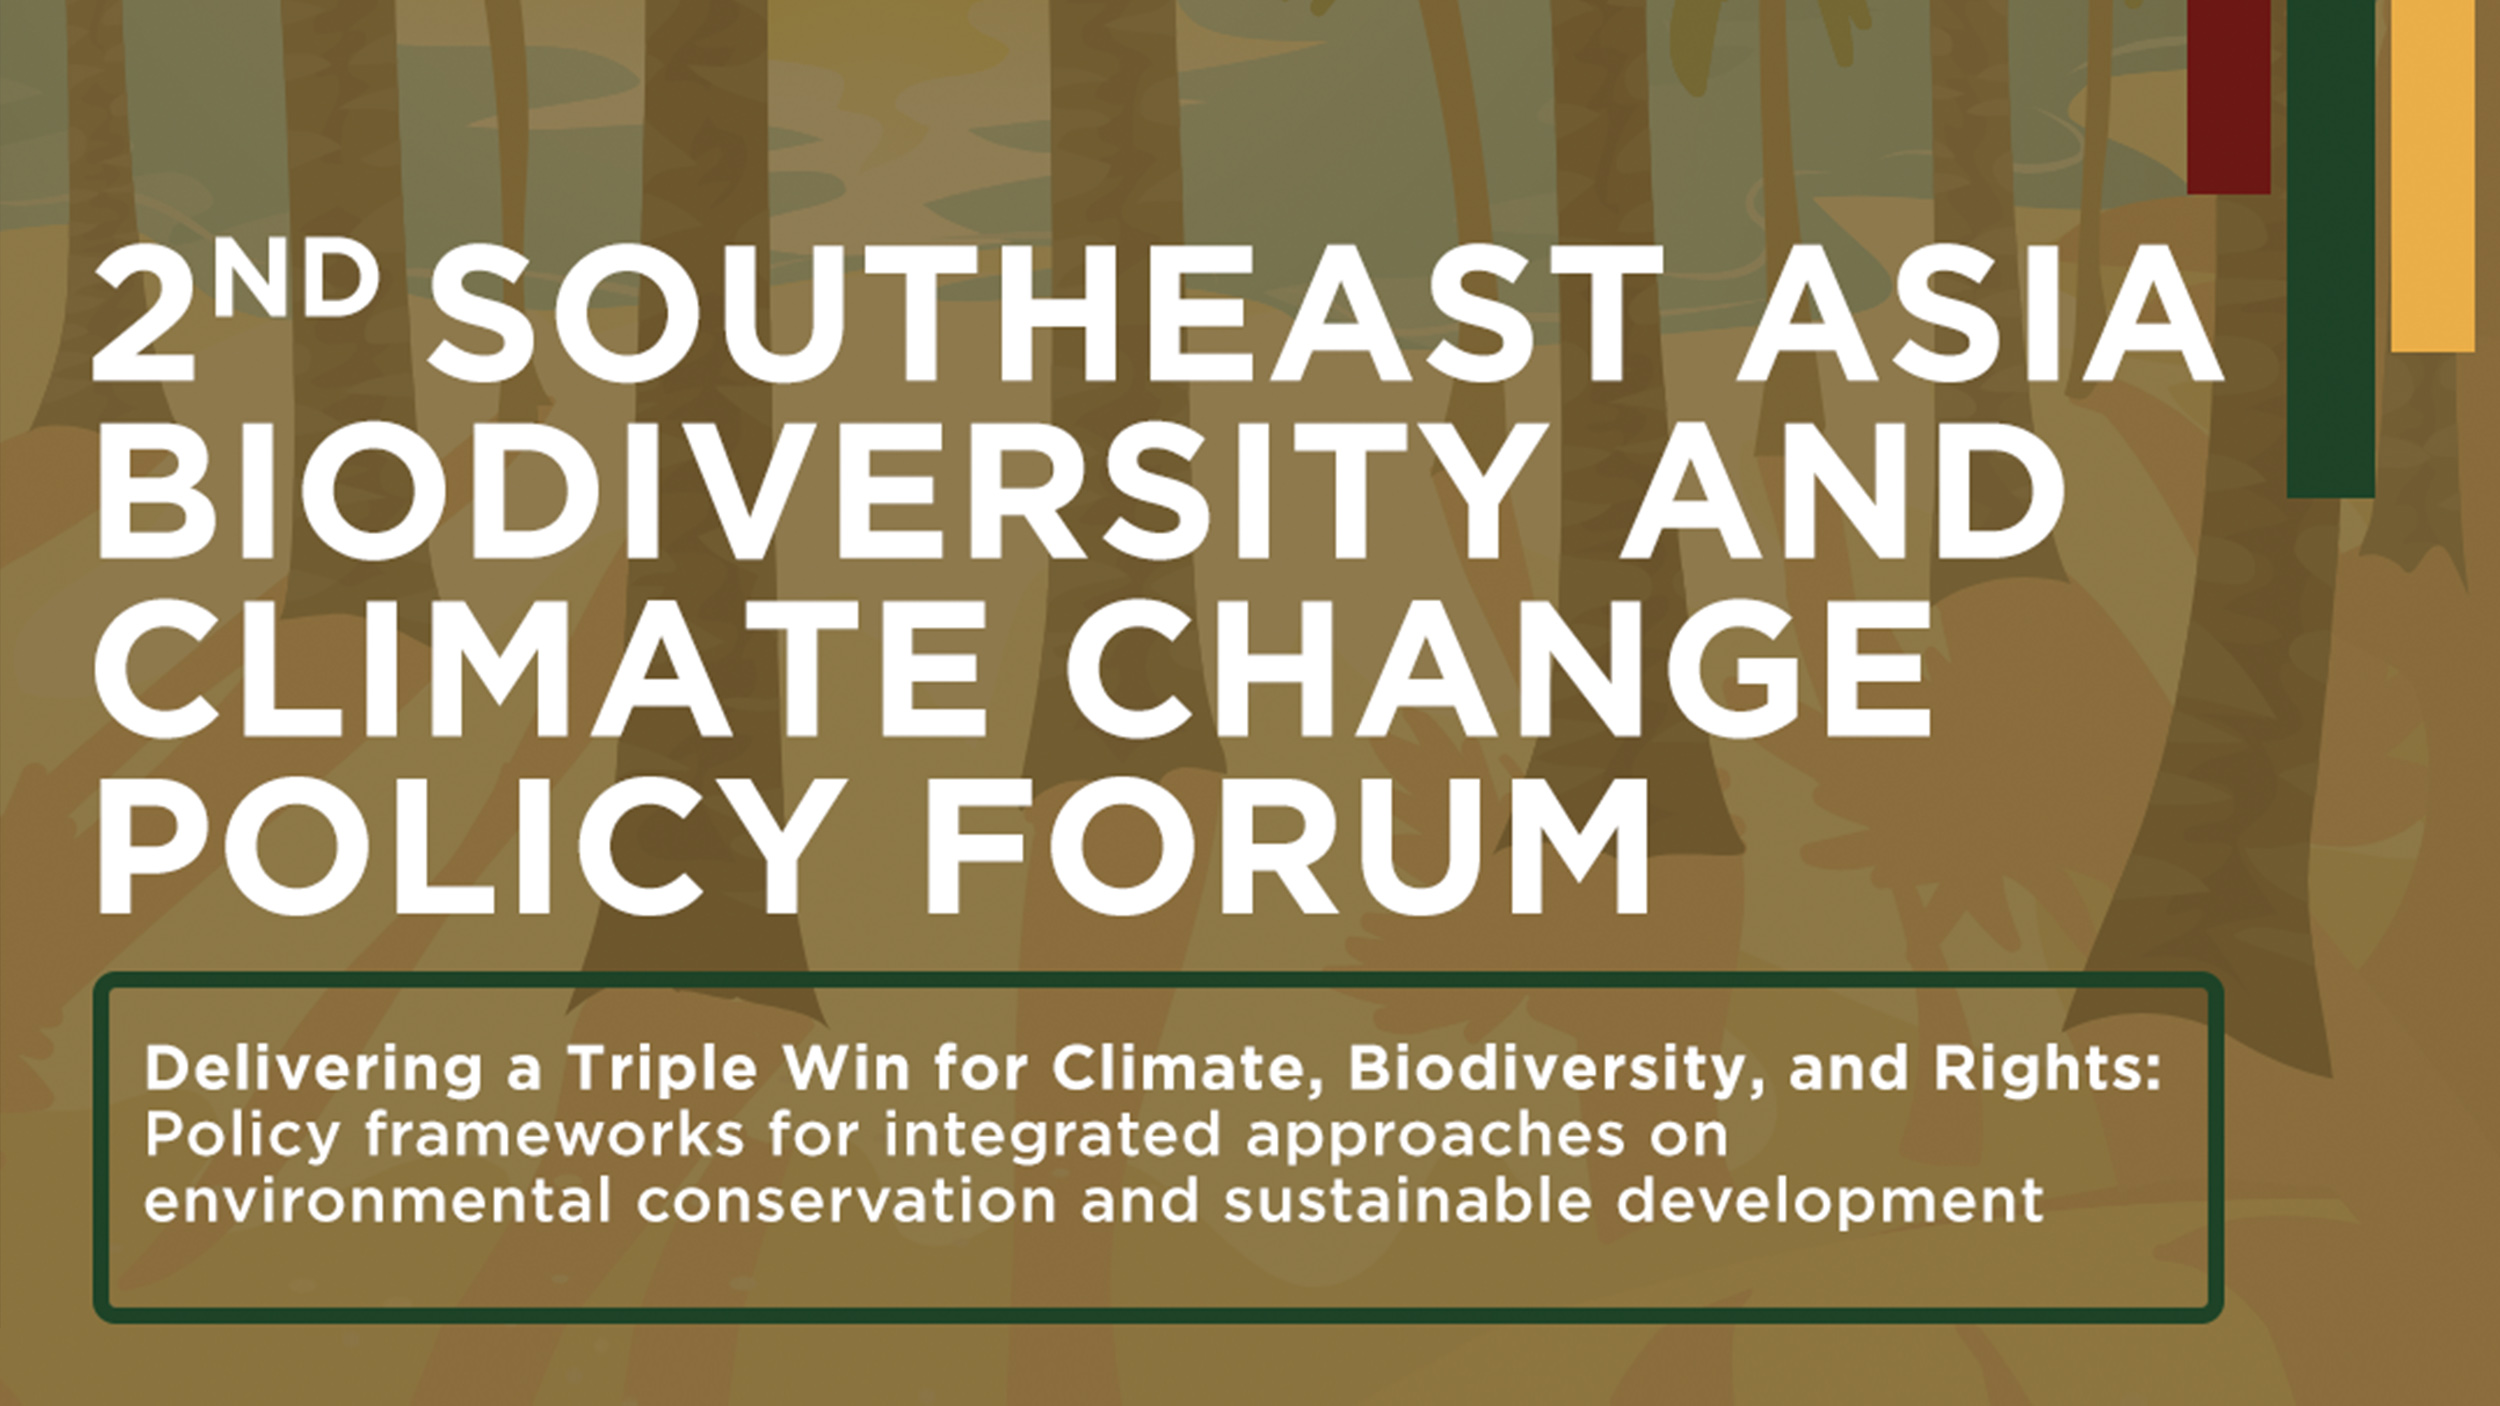 2nd Southeast Asia Biodiversity and Climate Change Policy Forum